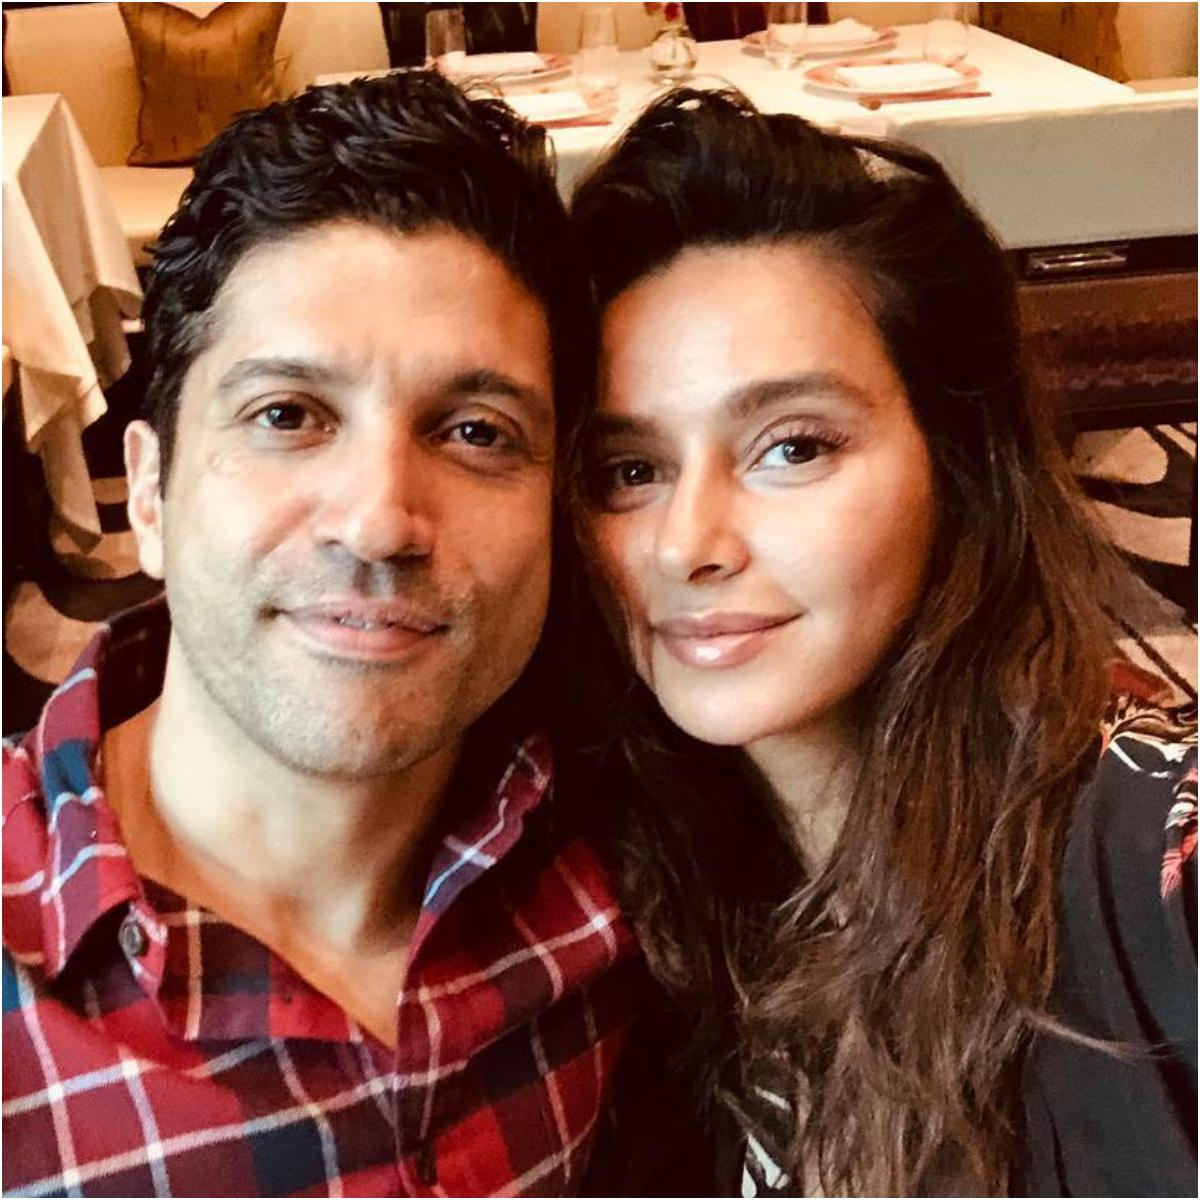 Farhan Akhtar and Shibani Dandekar's love story will make you root for this  celebrity couple even more